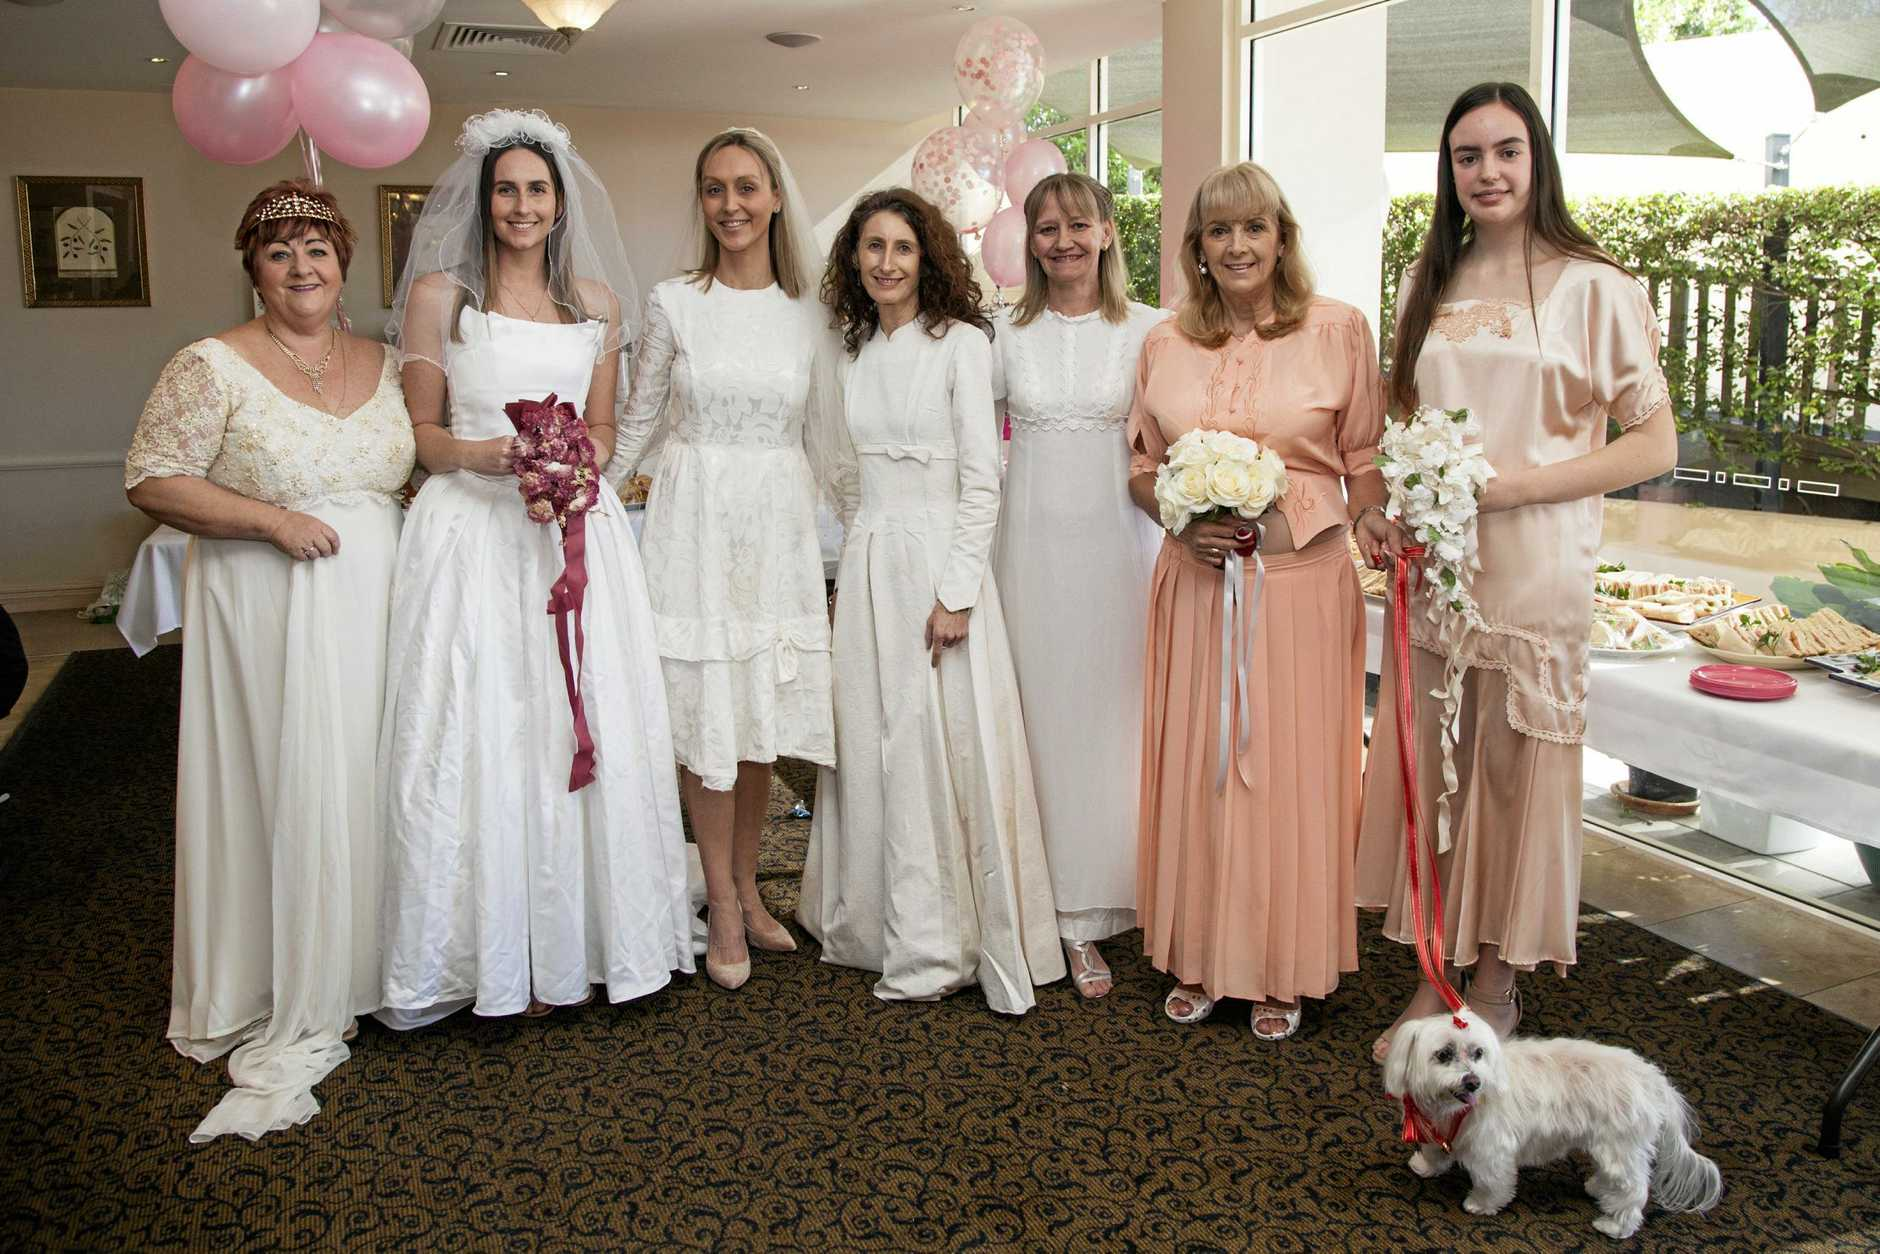 The fashions on display during the Bridal High Tea